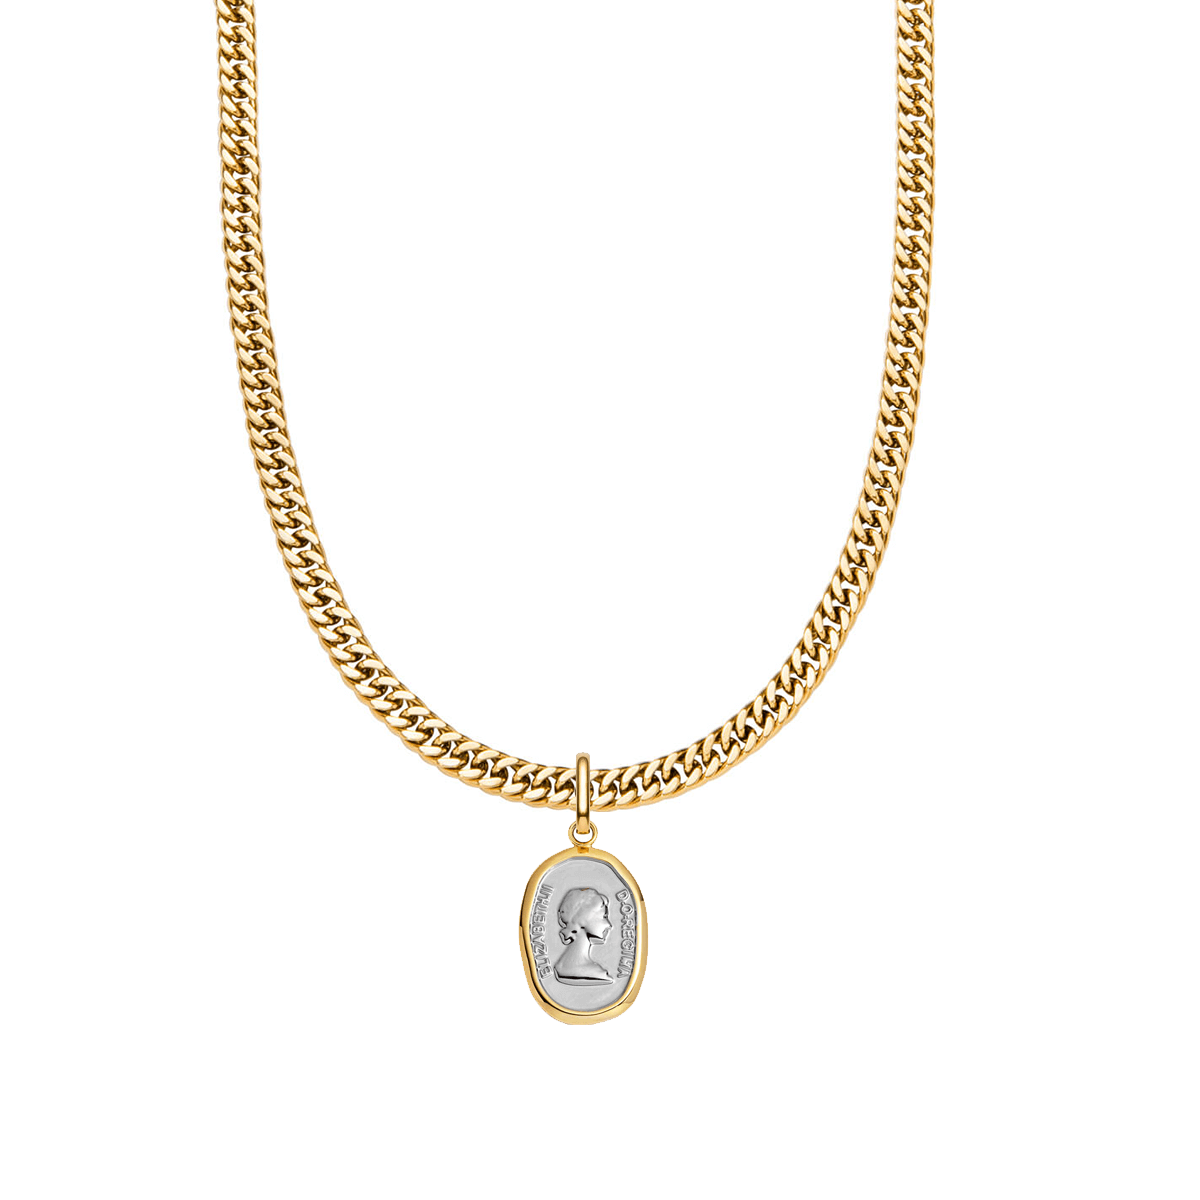 Queen Curb Chain Necklace 16 in (Gold)